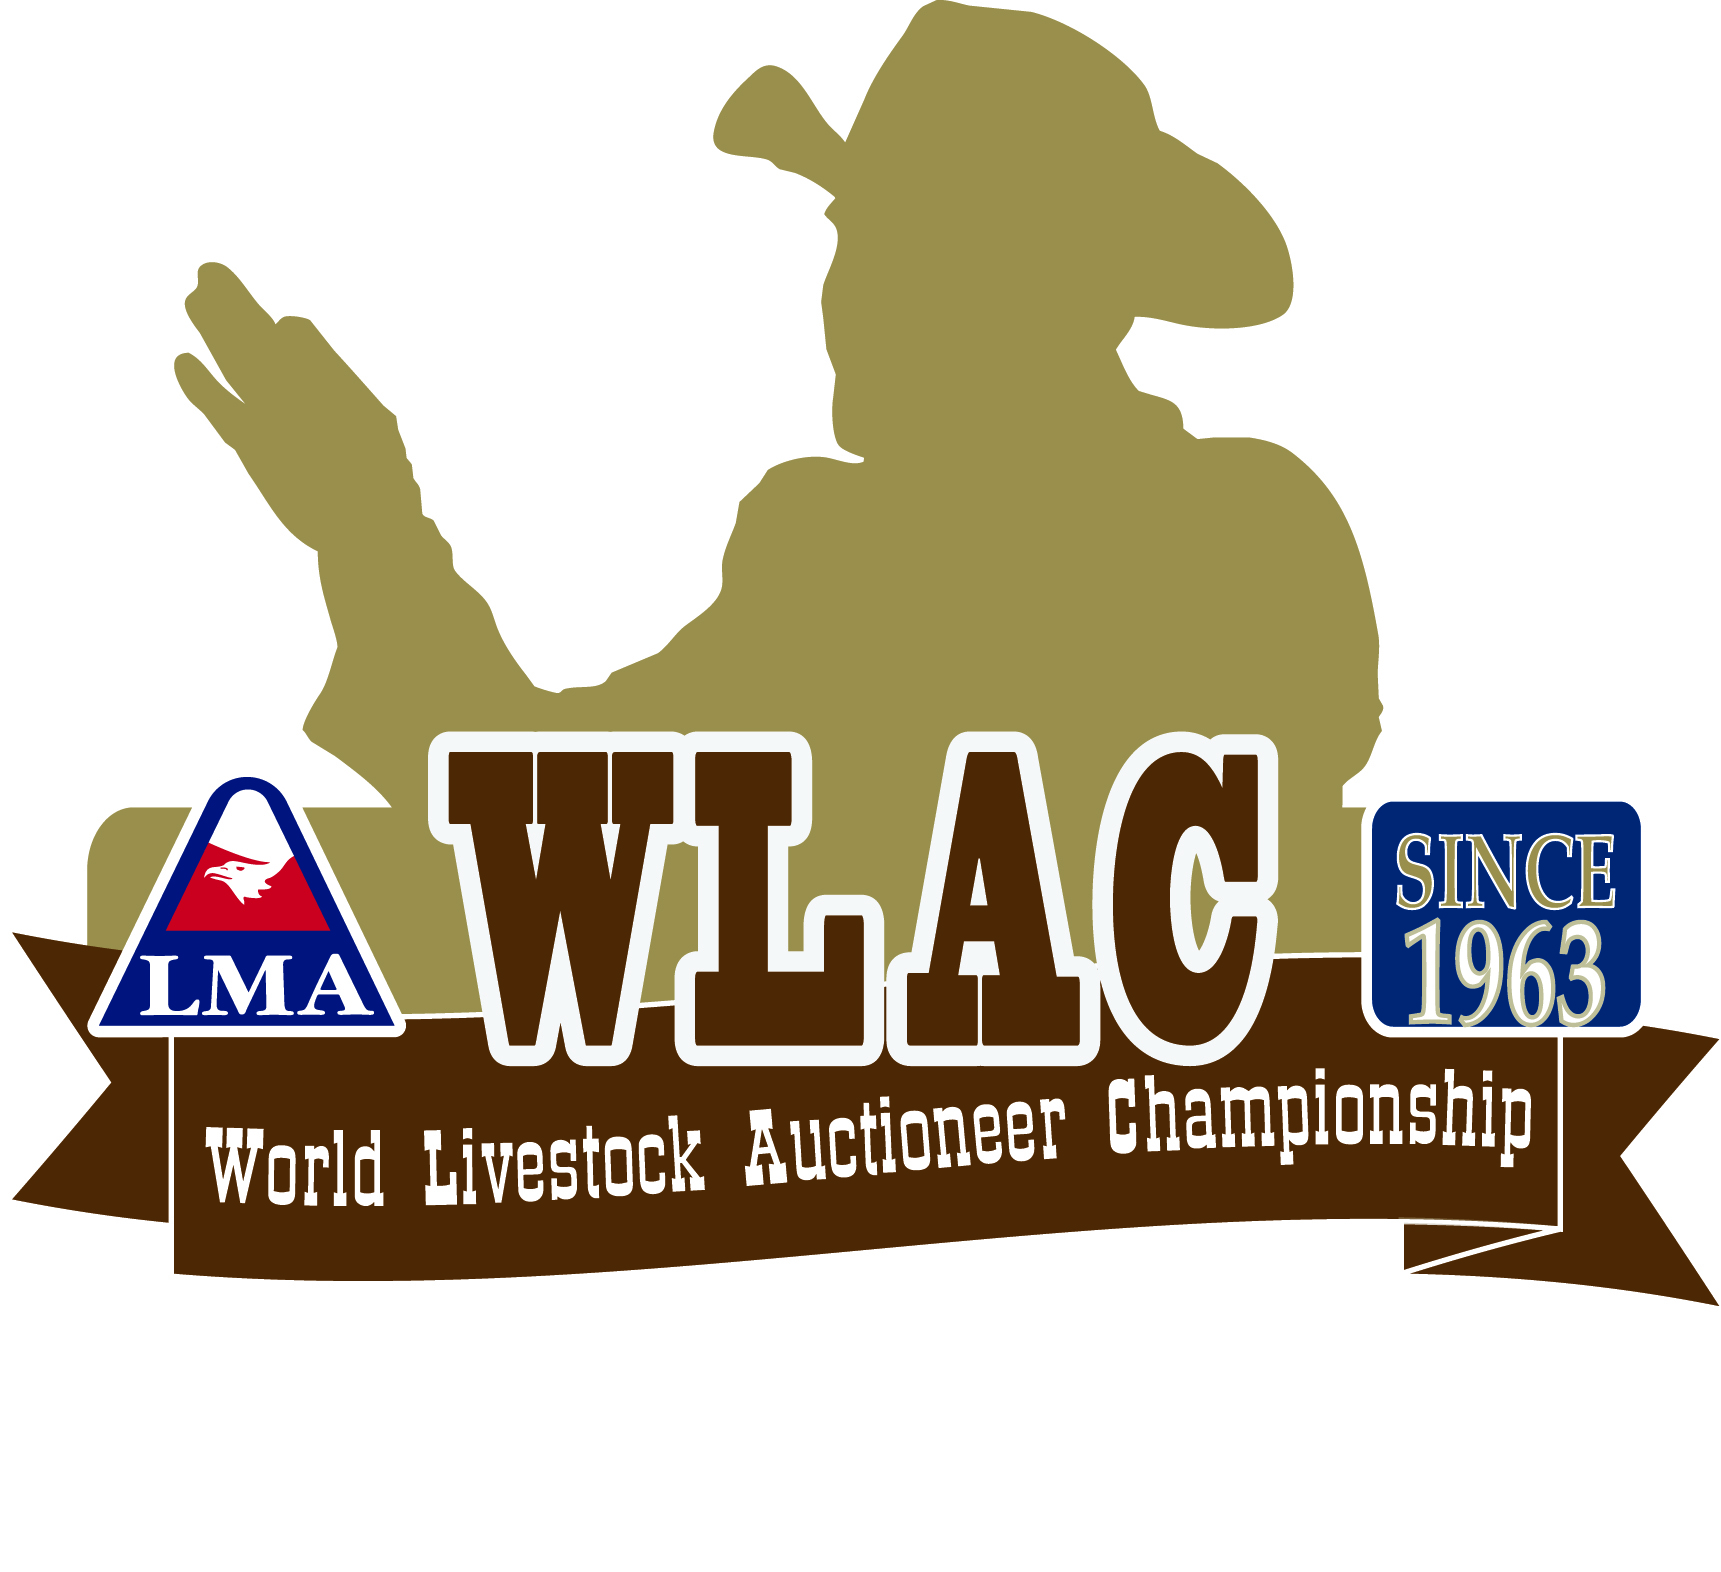 World Livestock Auctioneer Champions